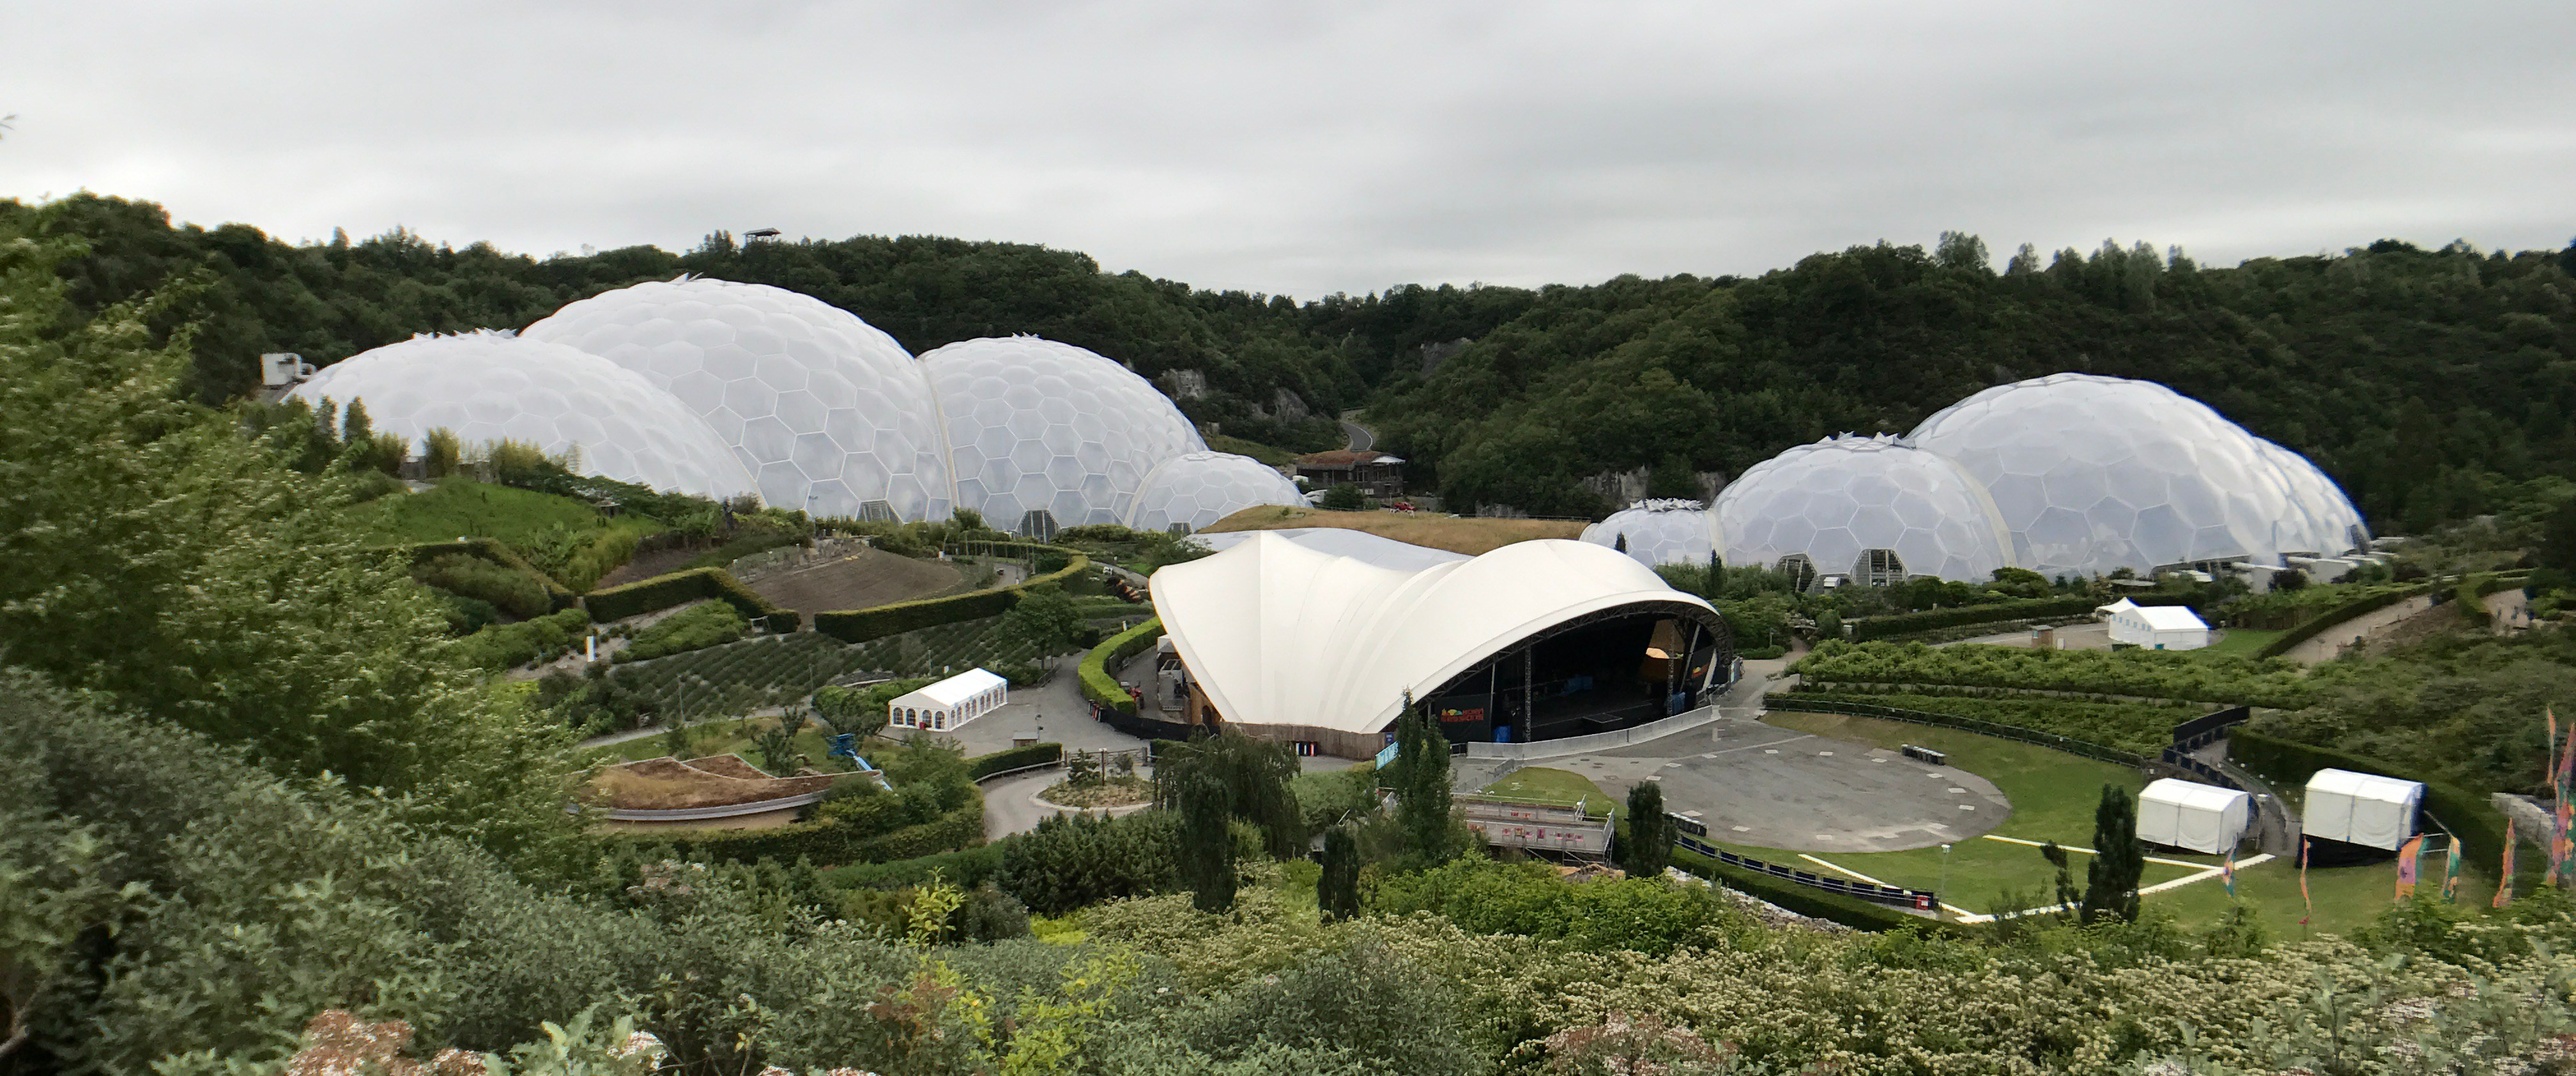 The Eden Project Summer 2017